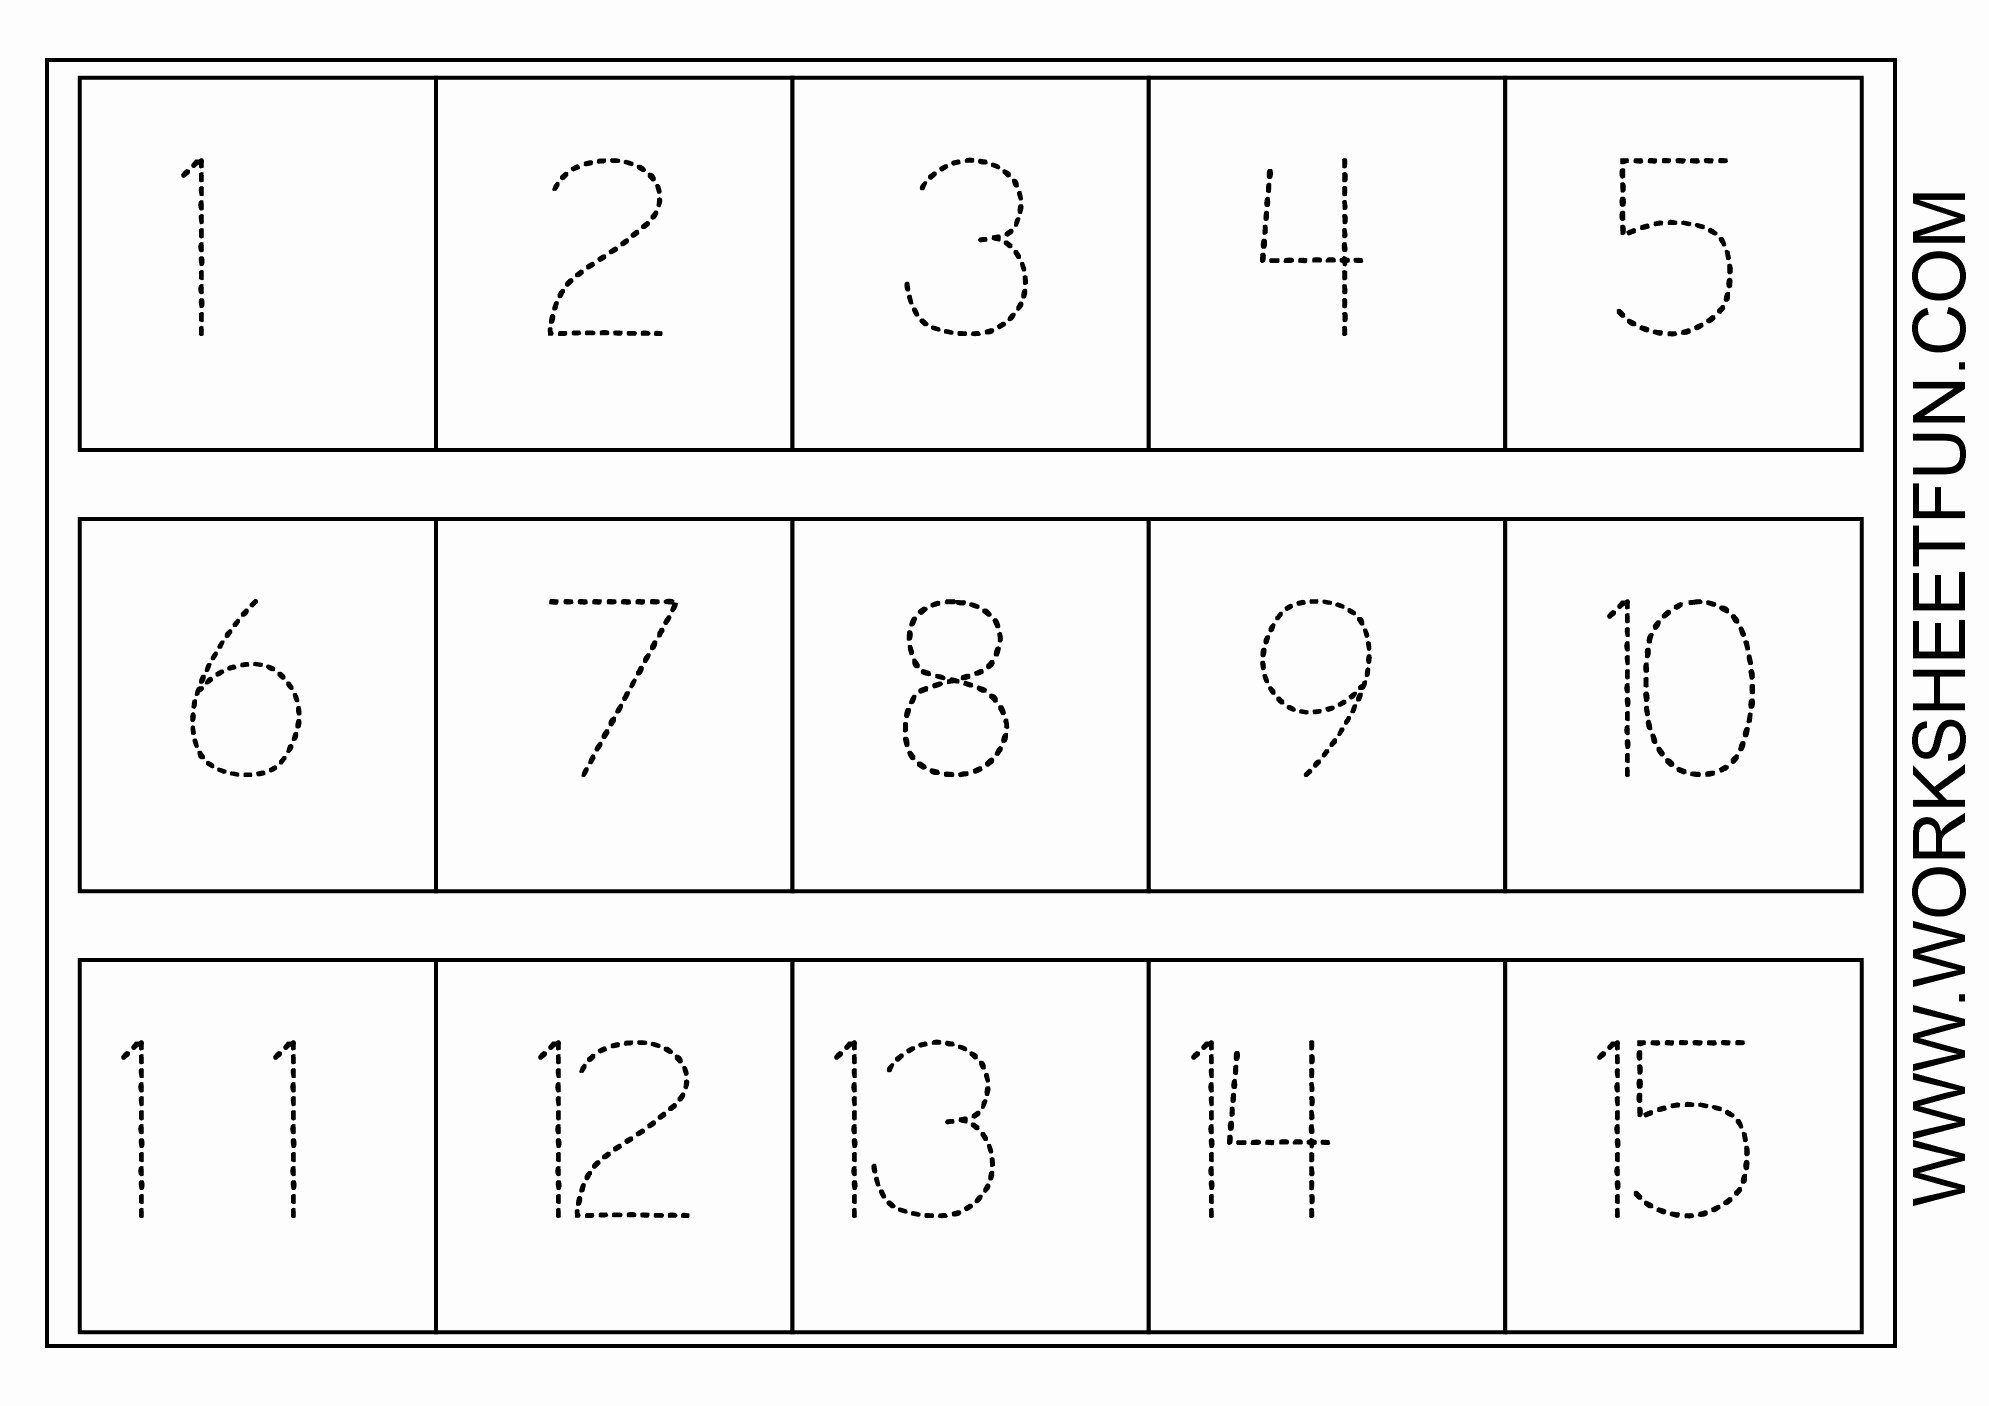 Worksheet Various Learning Resources In Mathematics Free Esl For Free Printable Preschool Worksheets Age 4